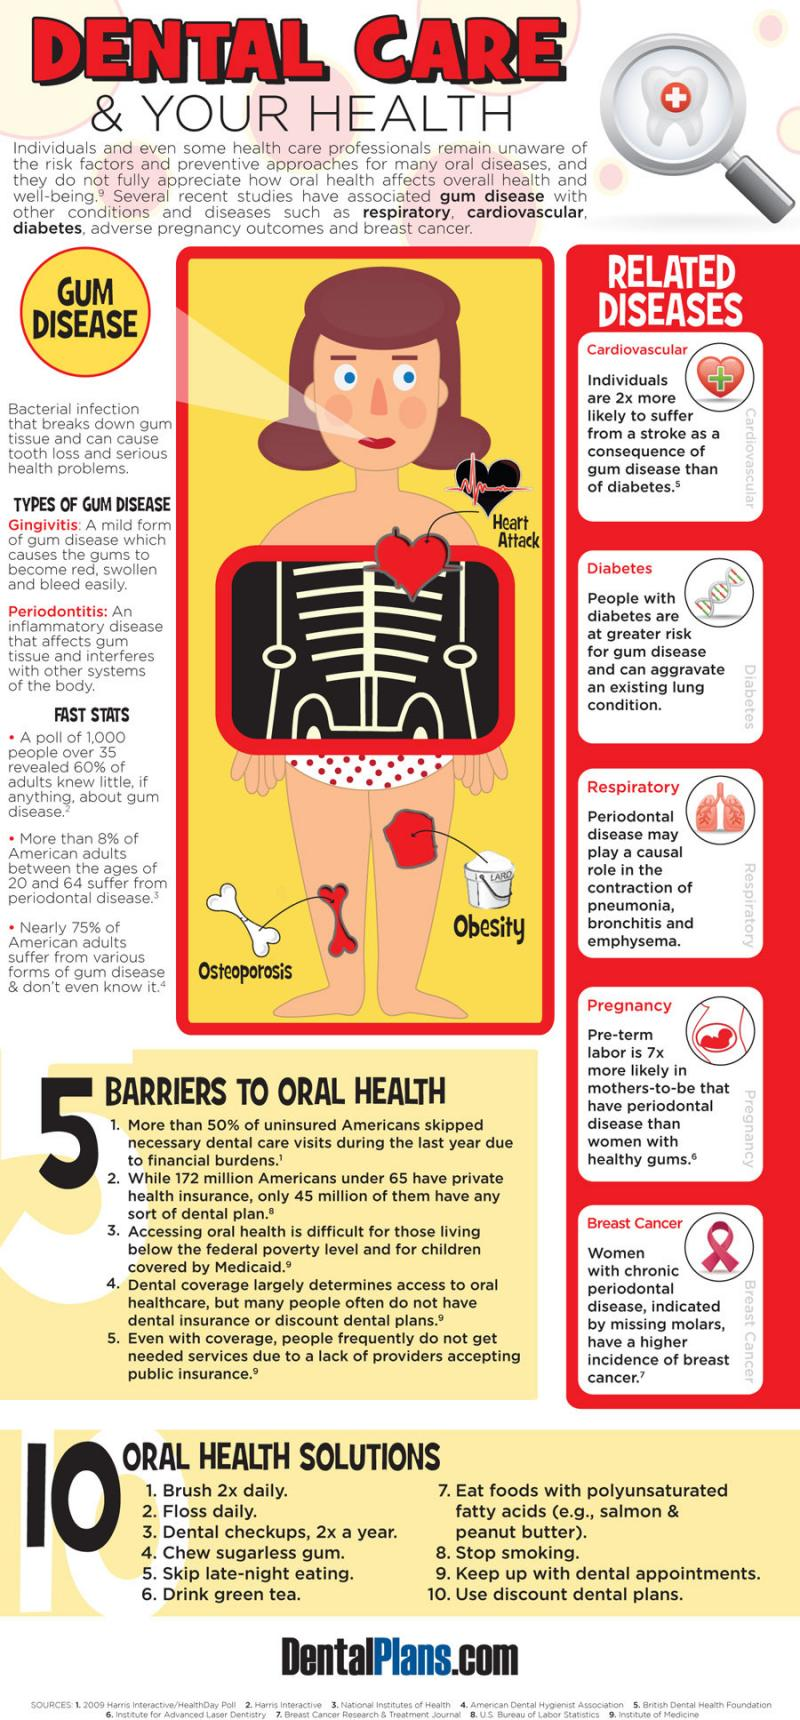 Dental care & your #health #infographic